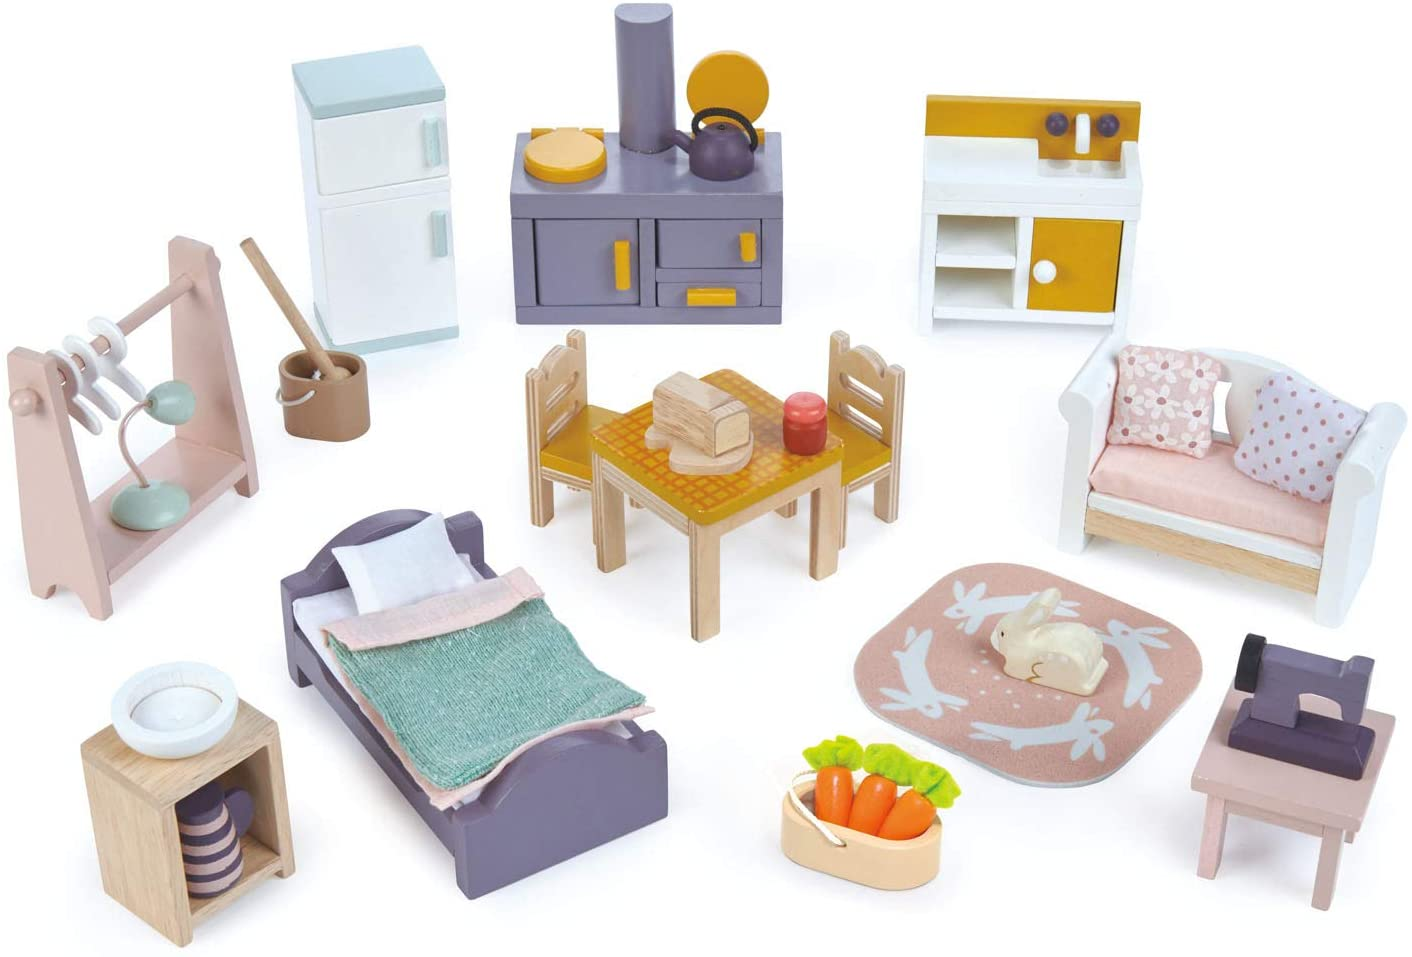 Tender Leaf Toys - Cottontail Cottage Starter Furniture Set - Detailed Ultra Stylish Wooden Furniture Sets and Room Decor - Encourage Creative and Imaginative Fun Play for Children 3+